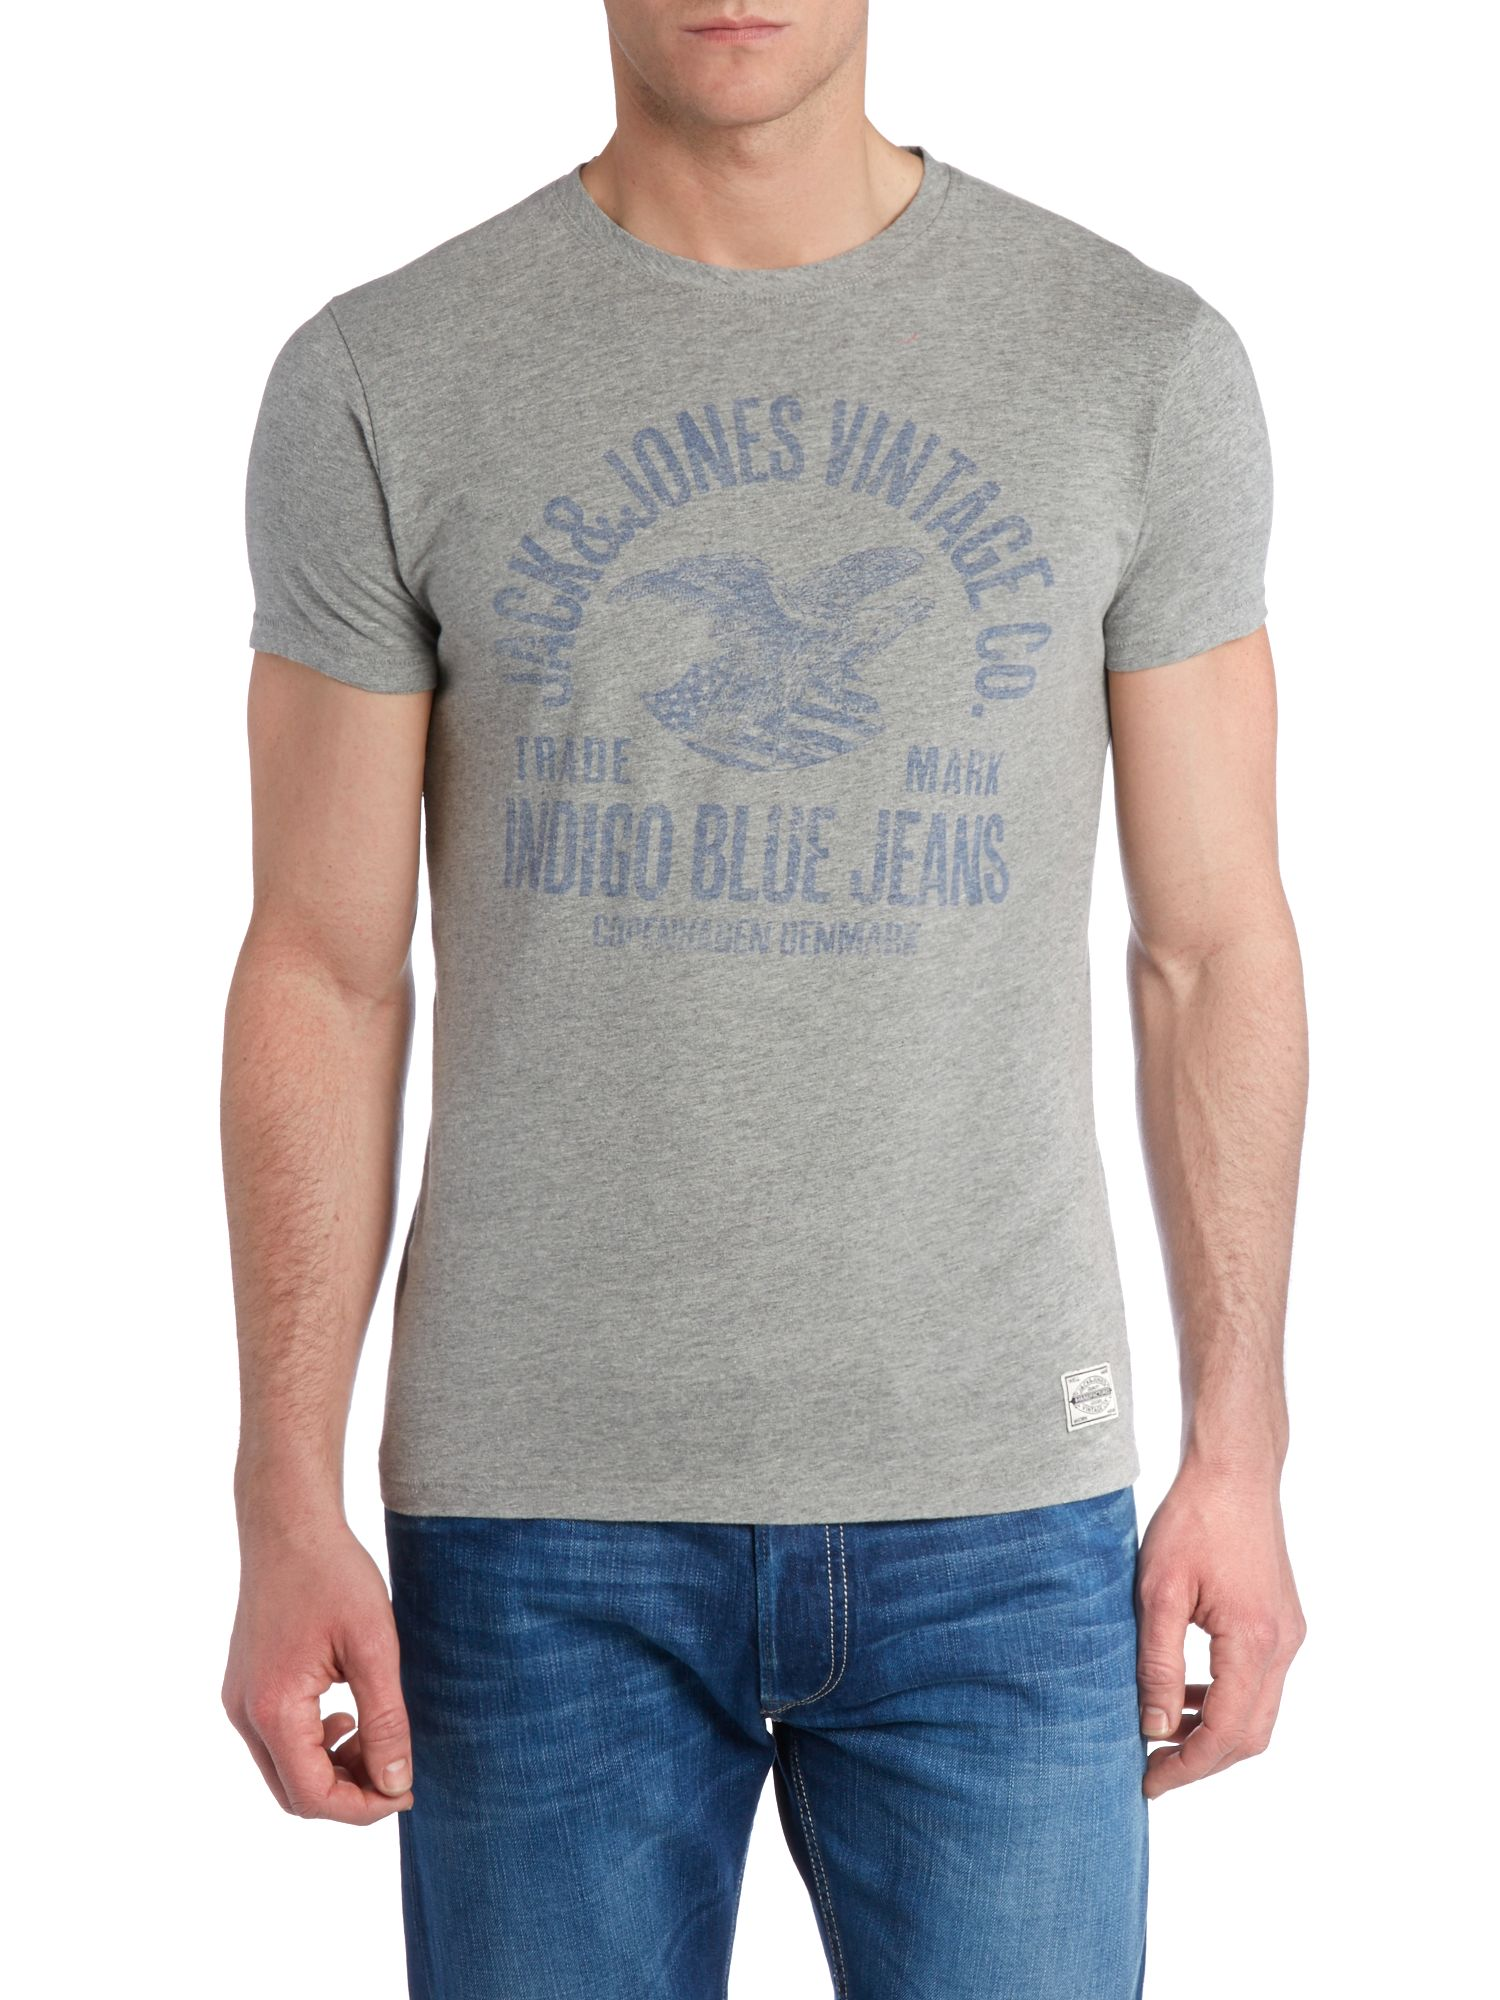 Indigo Blues logo t-shirt